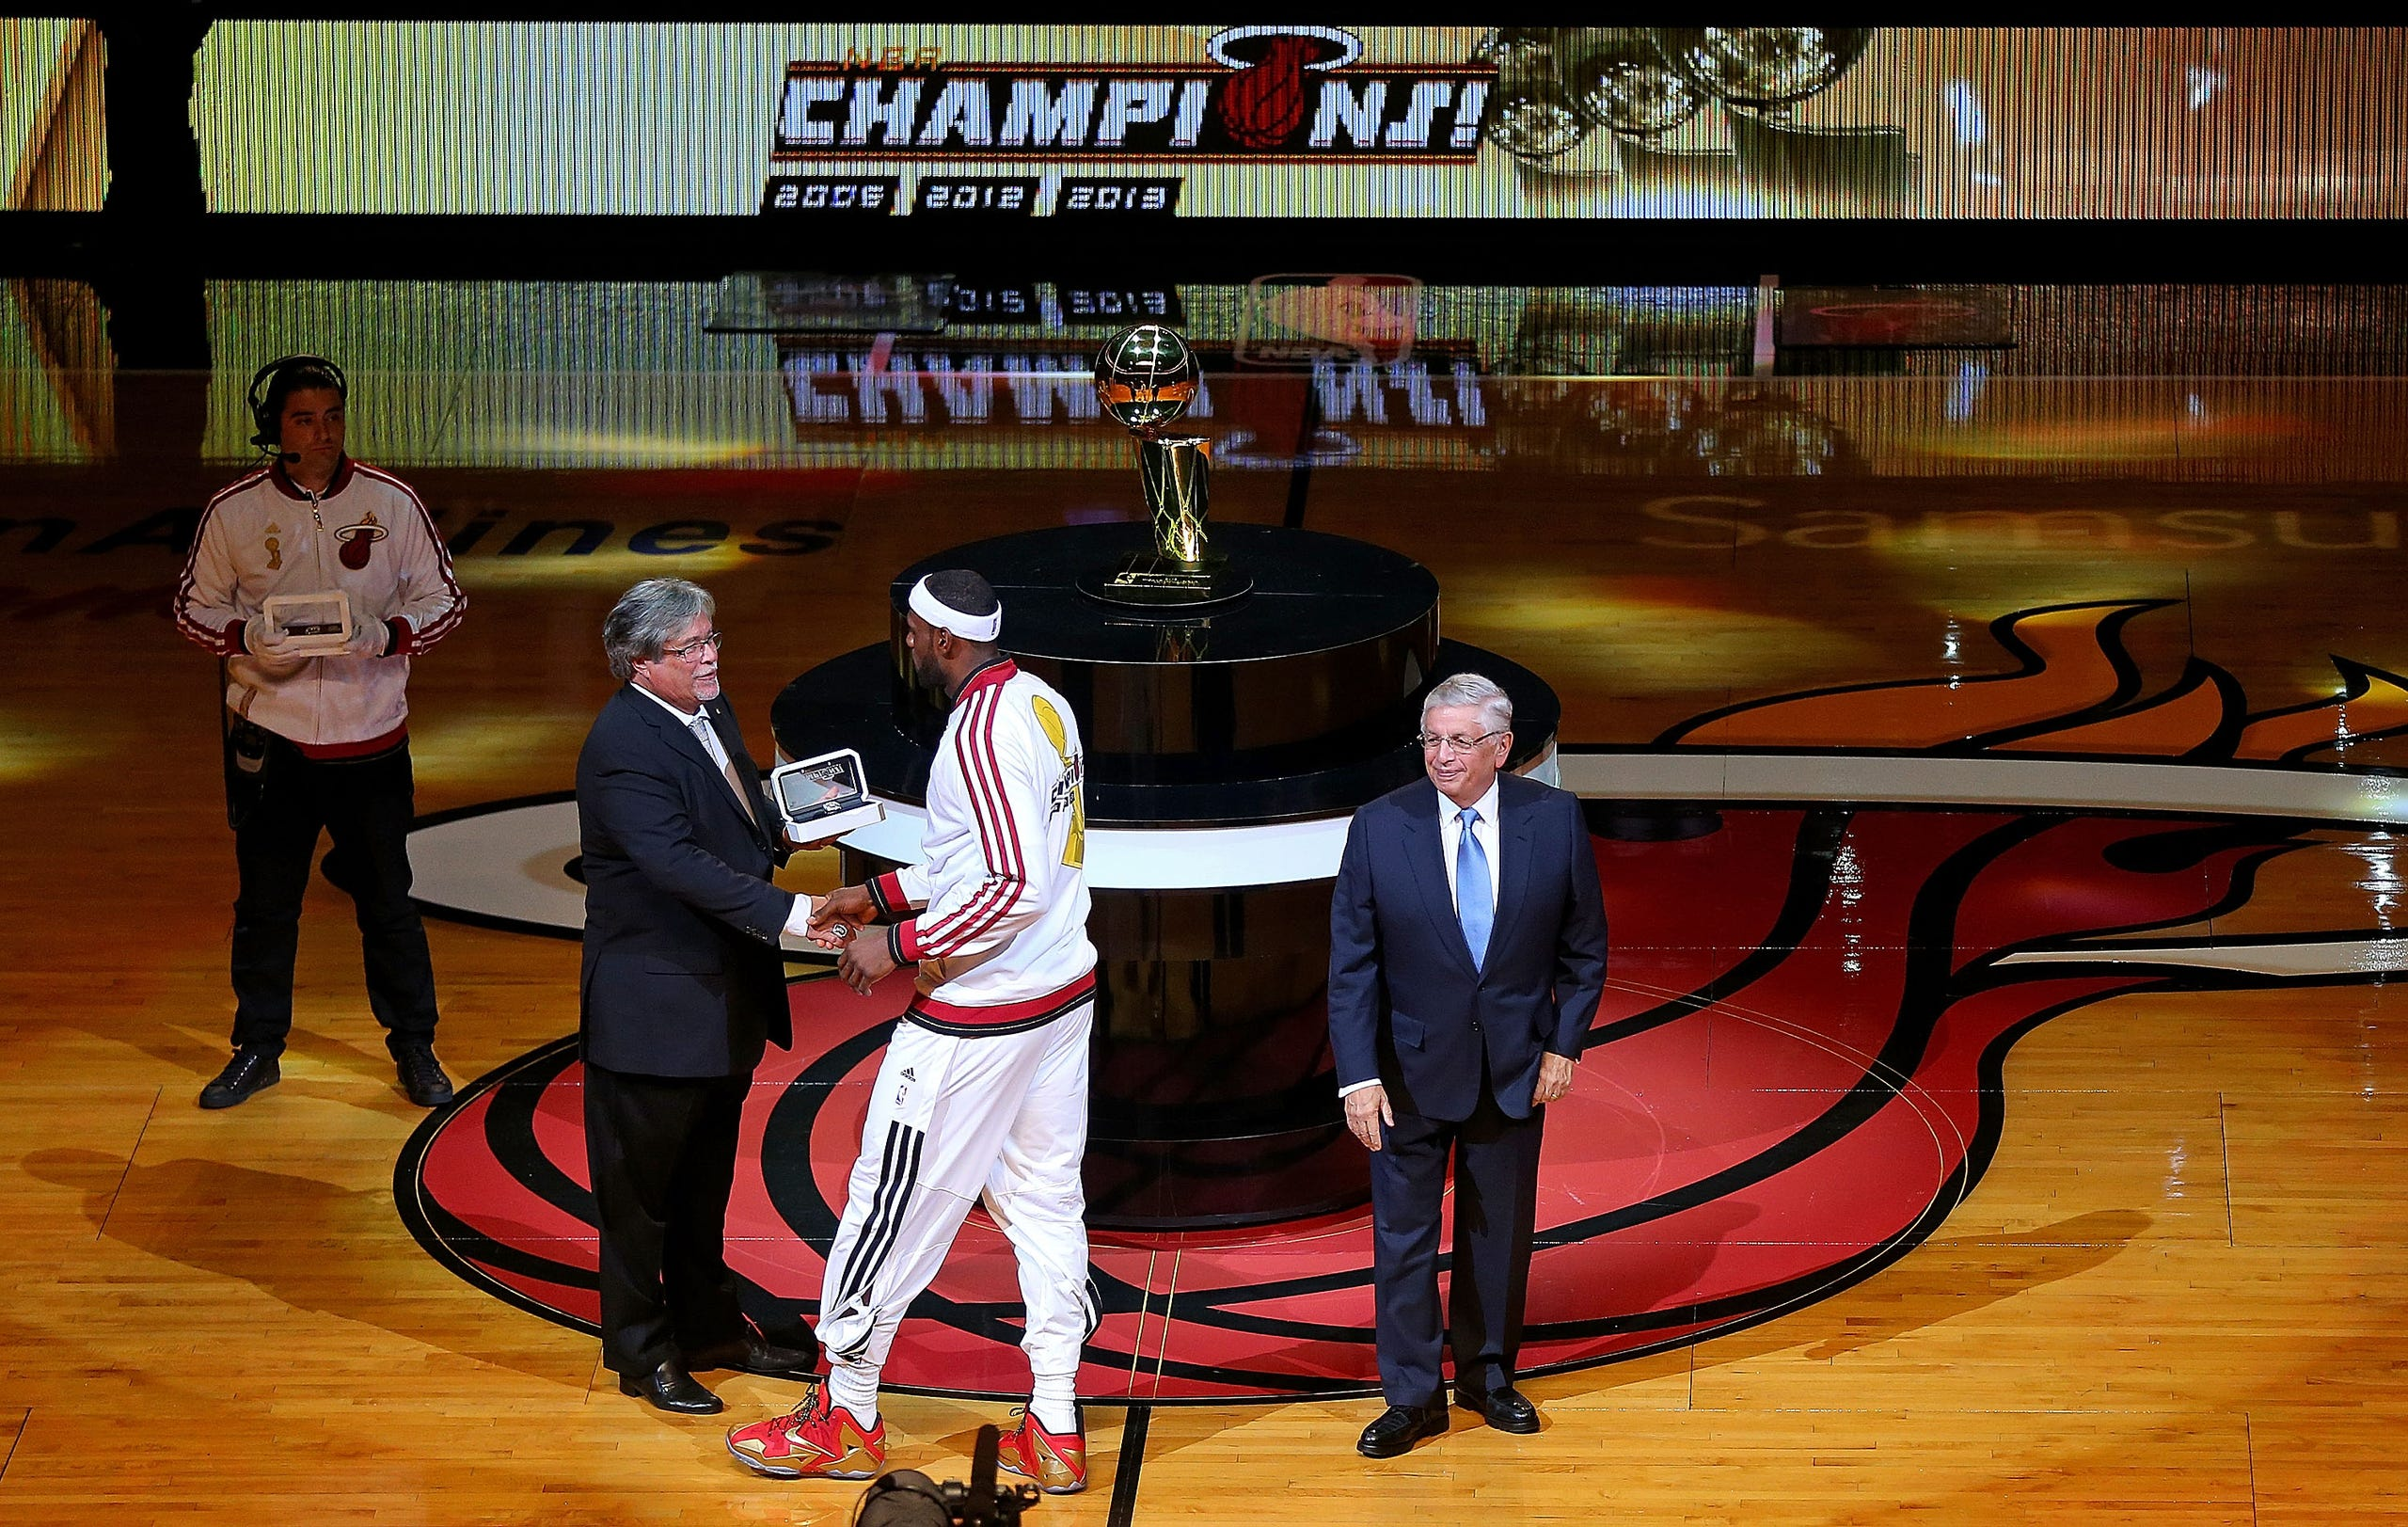 Miami Heat 2013 Championship Ring And Banner Ceremony